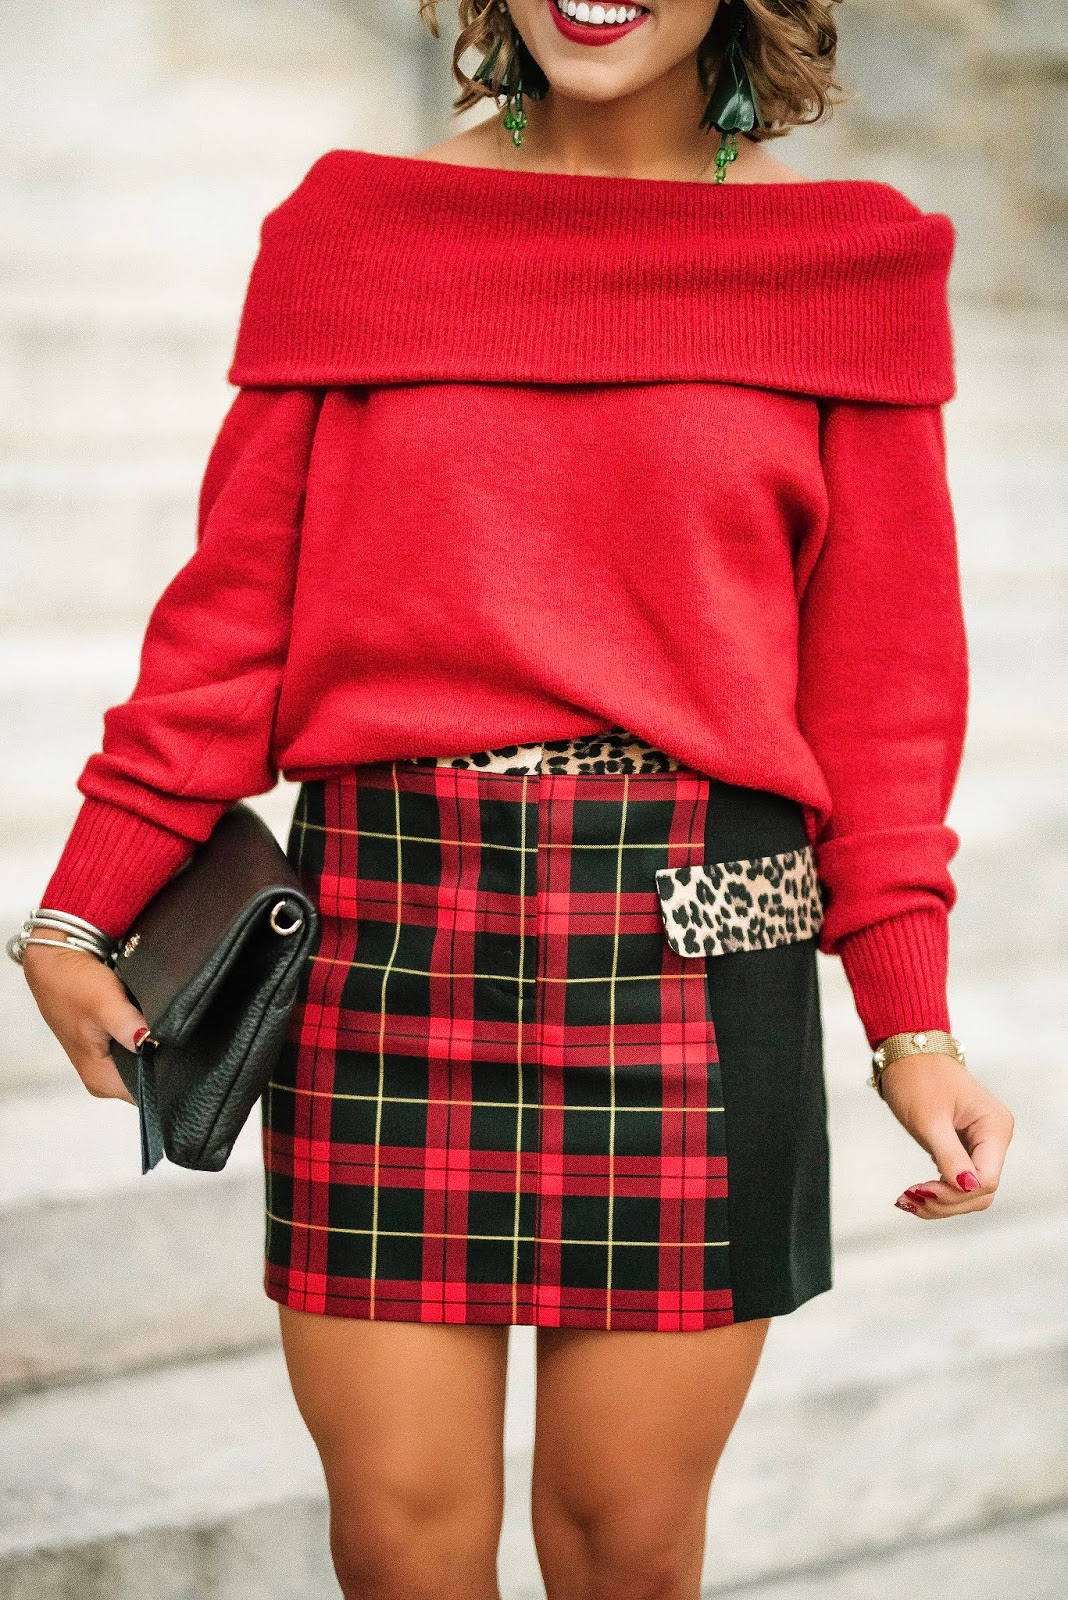 Red, Plaid and Leopard + Cyber Monday Sales!!! - Something Delightful Blog